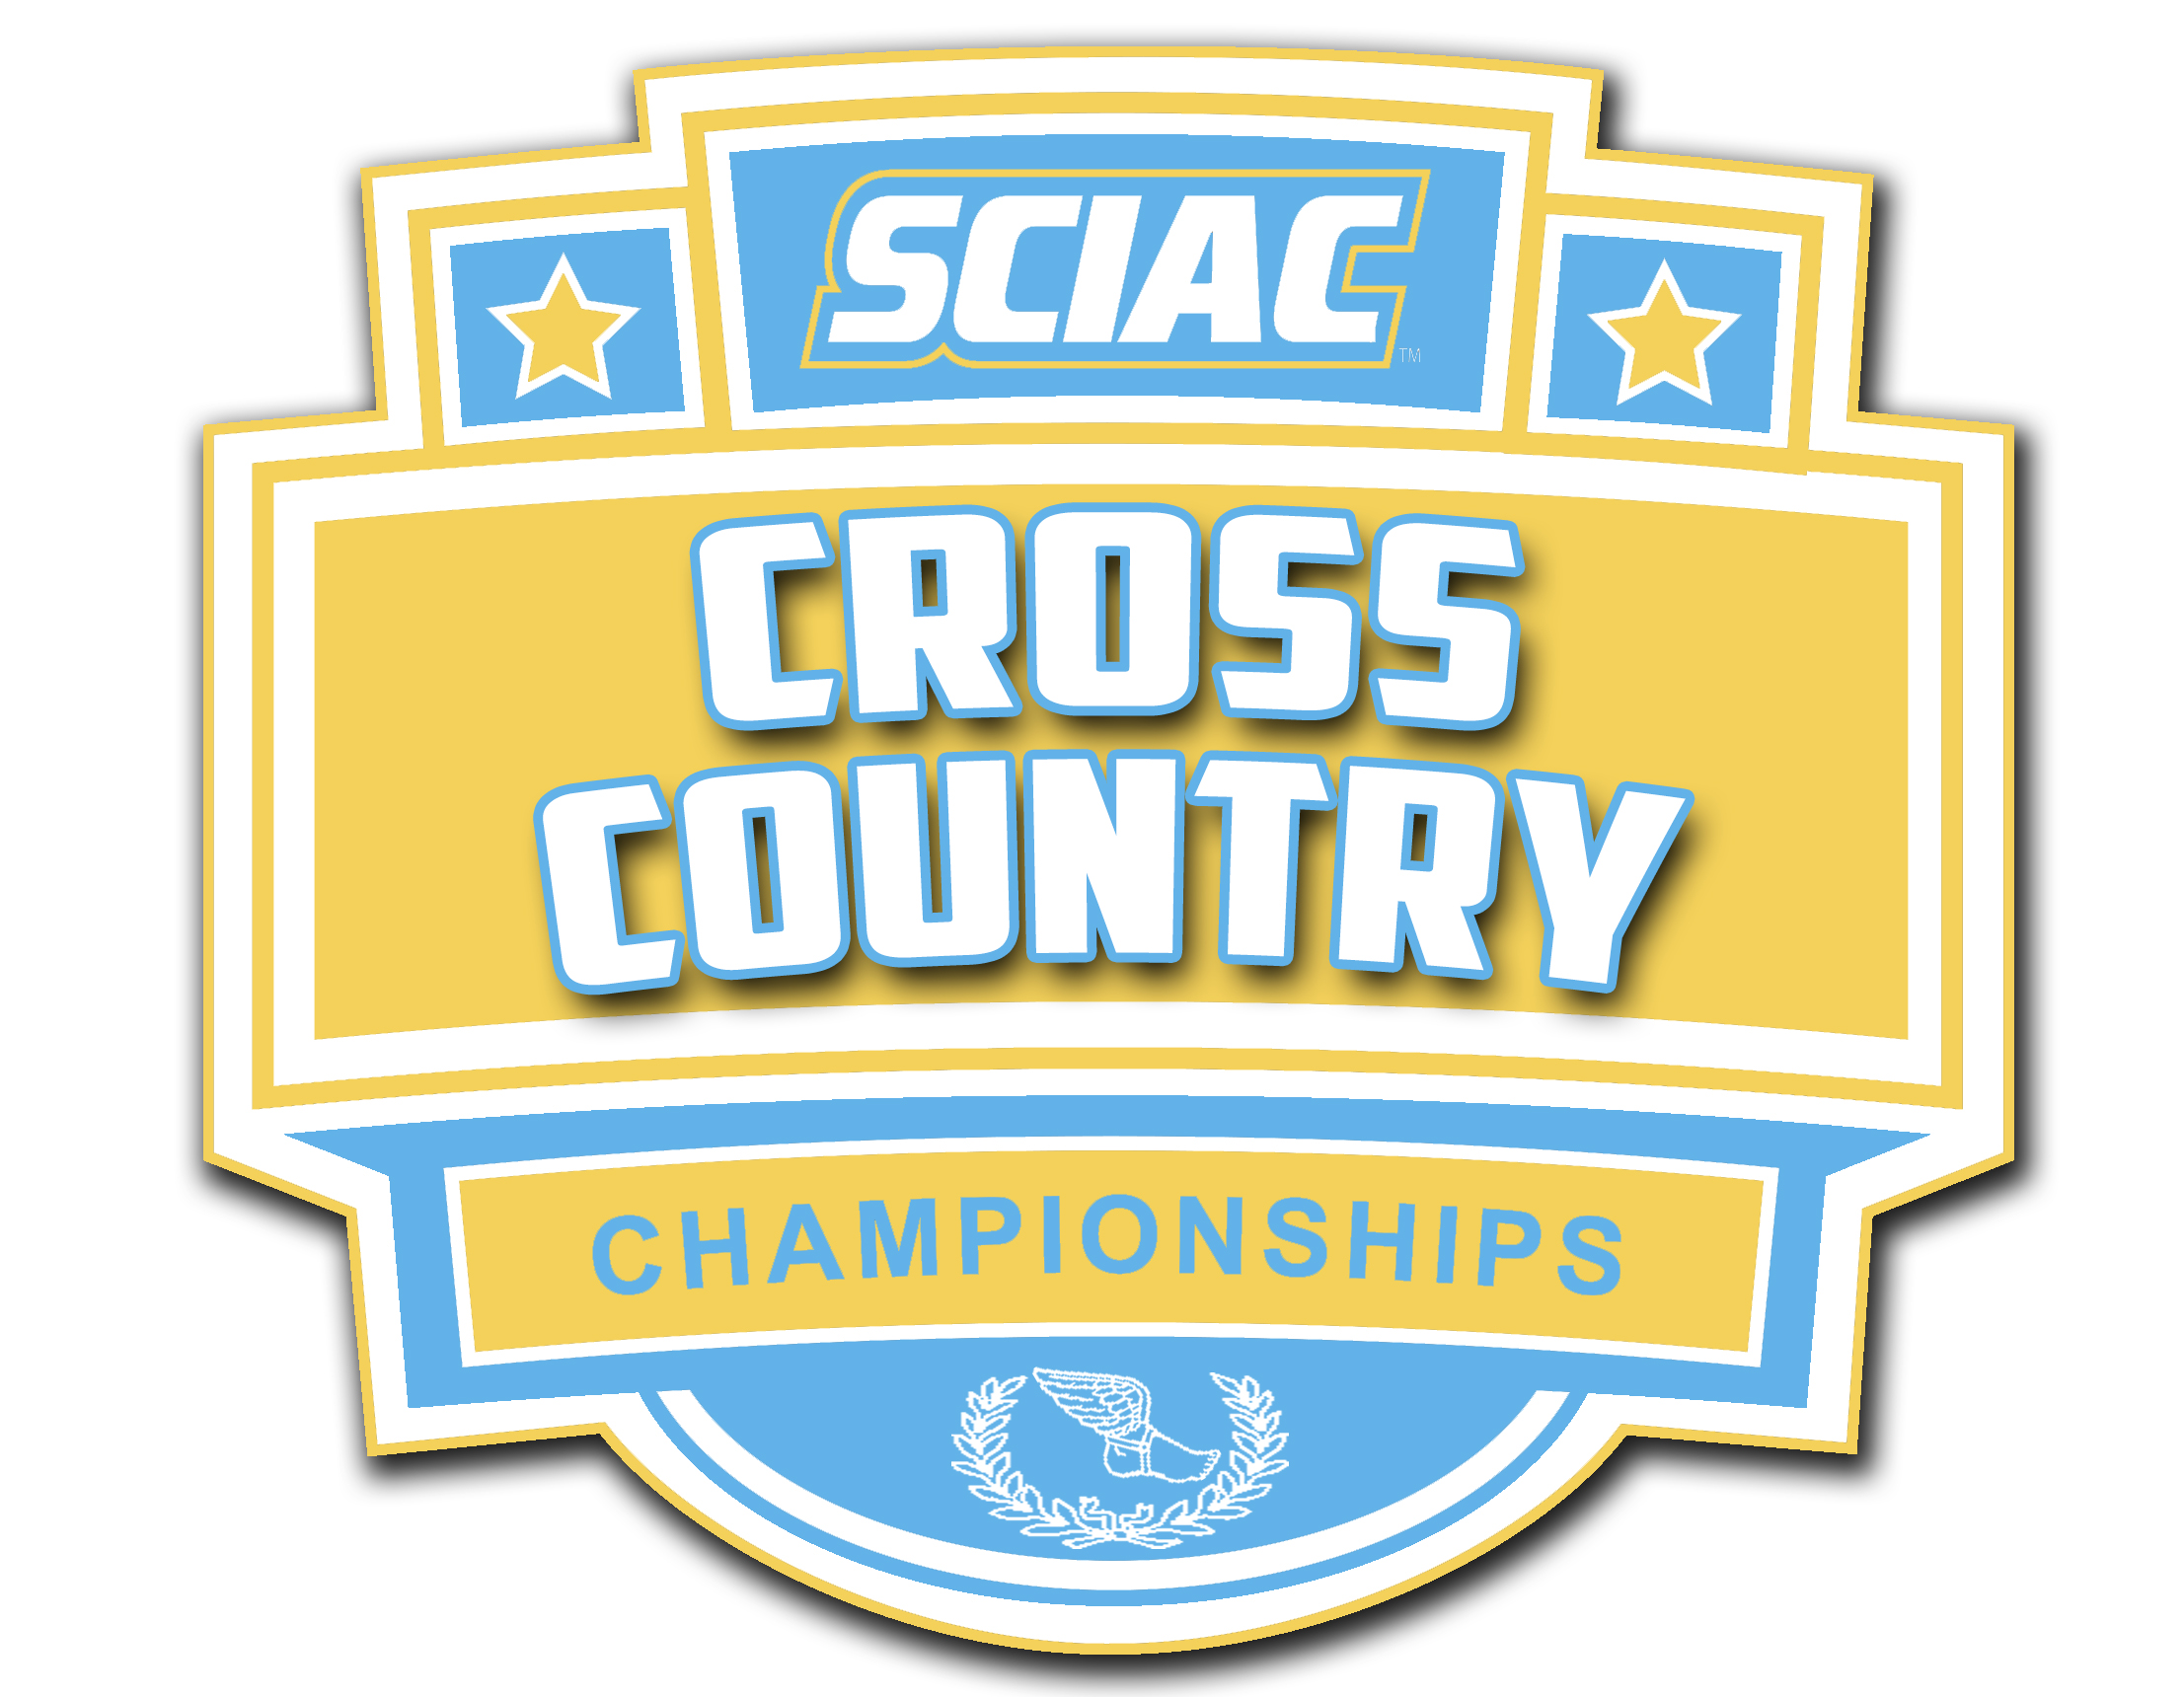 2016 SCIAC Cross Country Championships